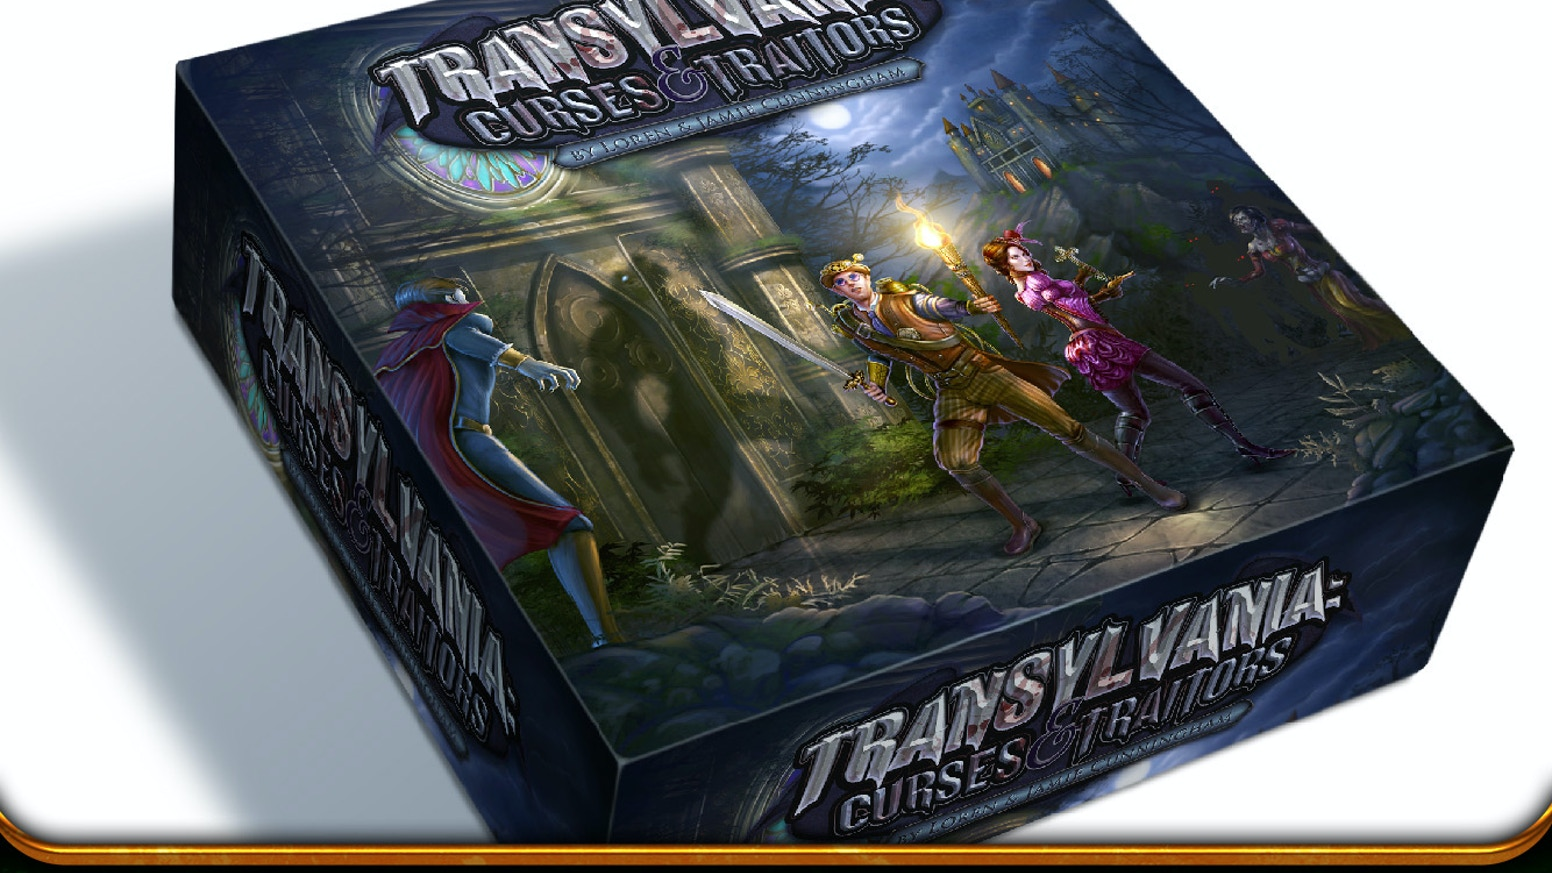 Explore Transylvania. Search for knowledge. Break the curse or transform into a monster. An adventure game where dying is half the fun!